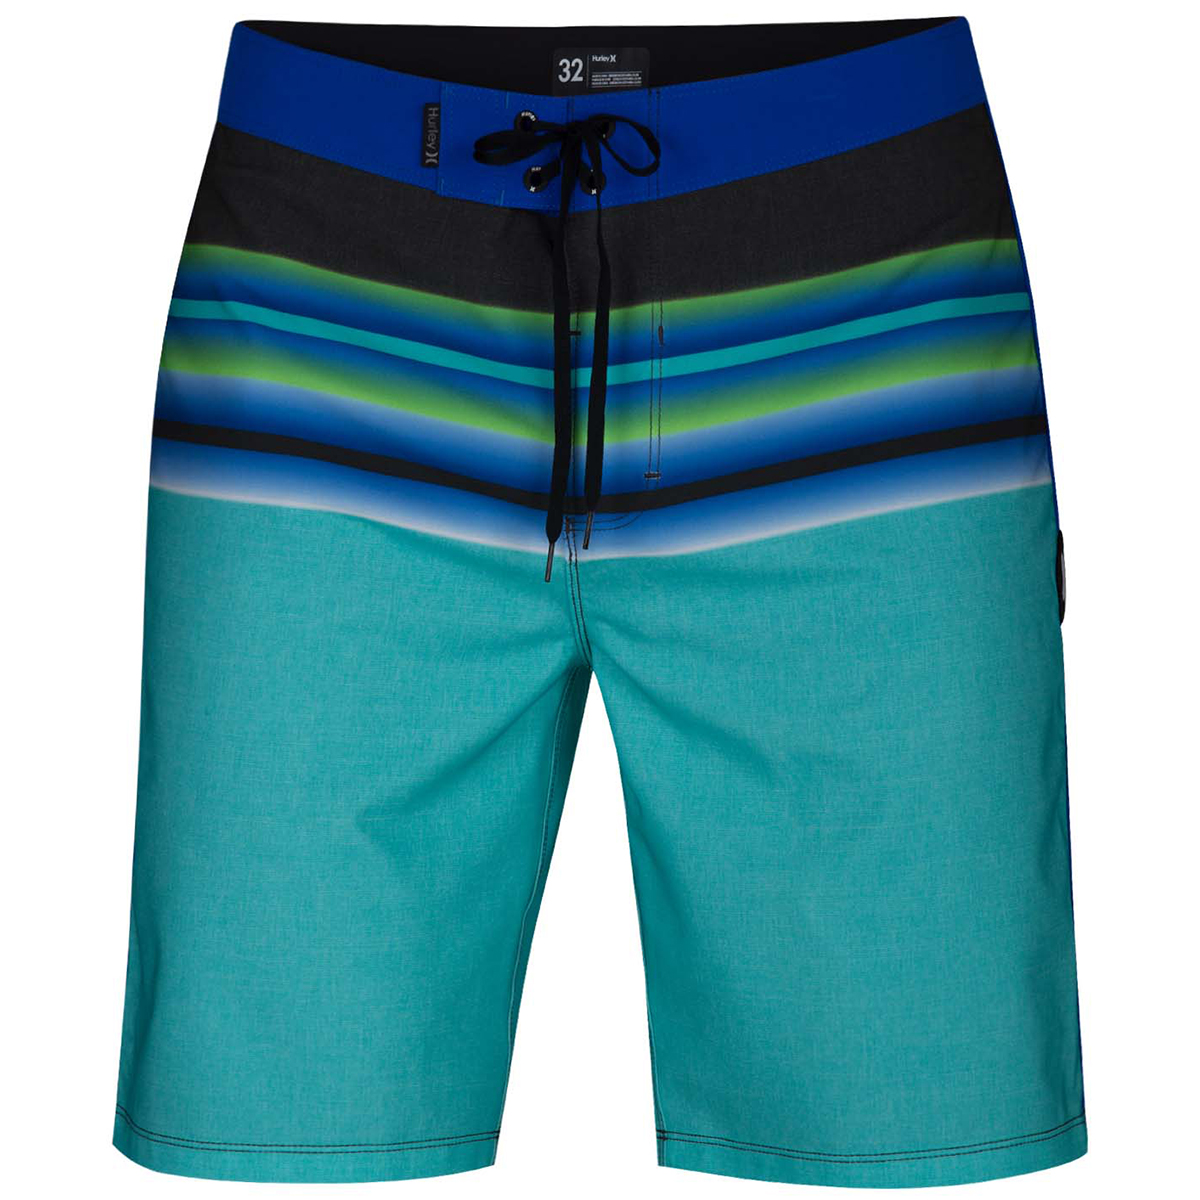 "Hurley Men's Phantom Solace 20"" Boardshorts - Blue, 36"